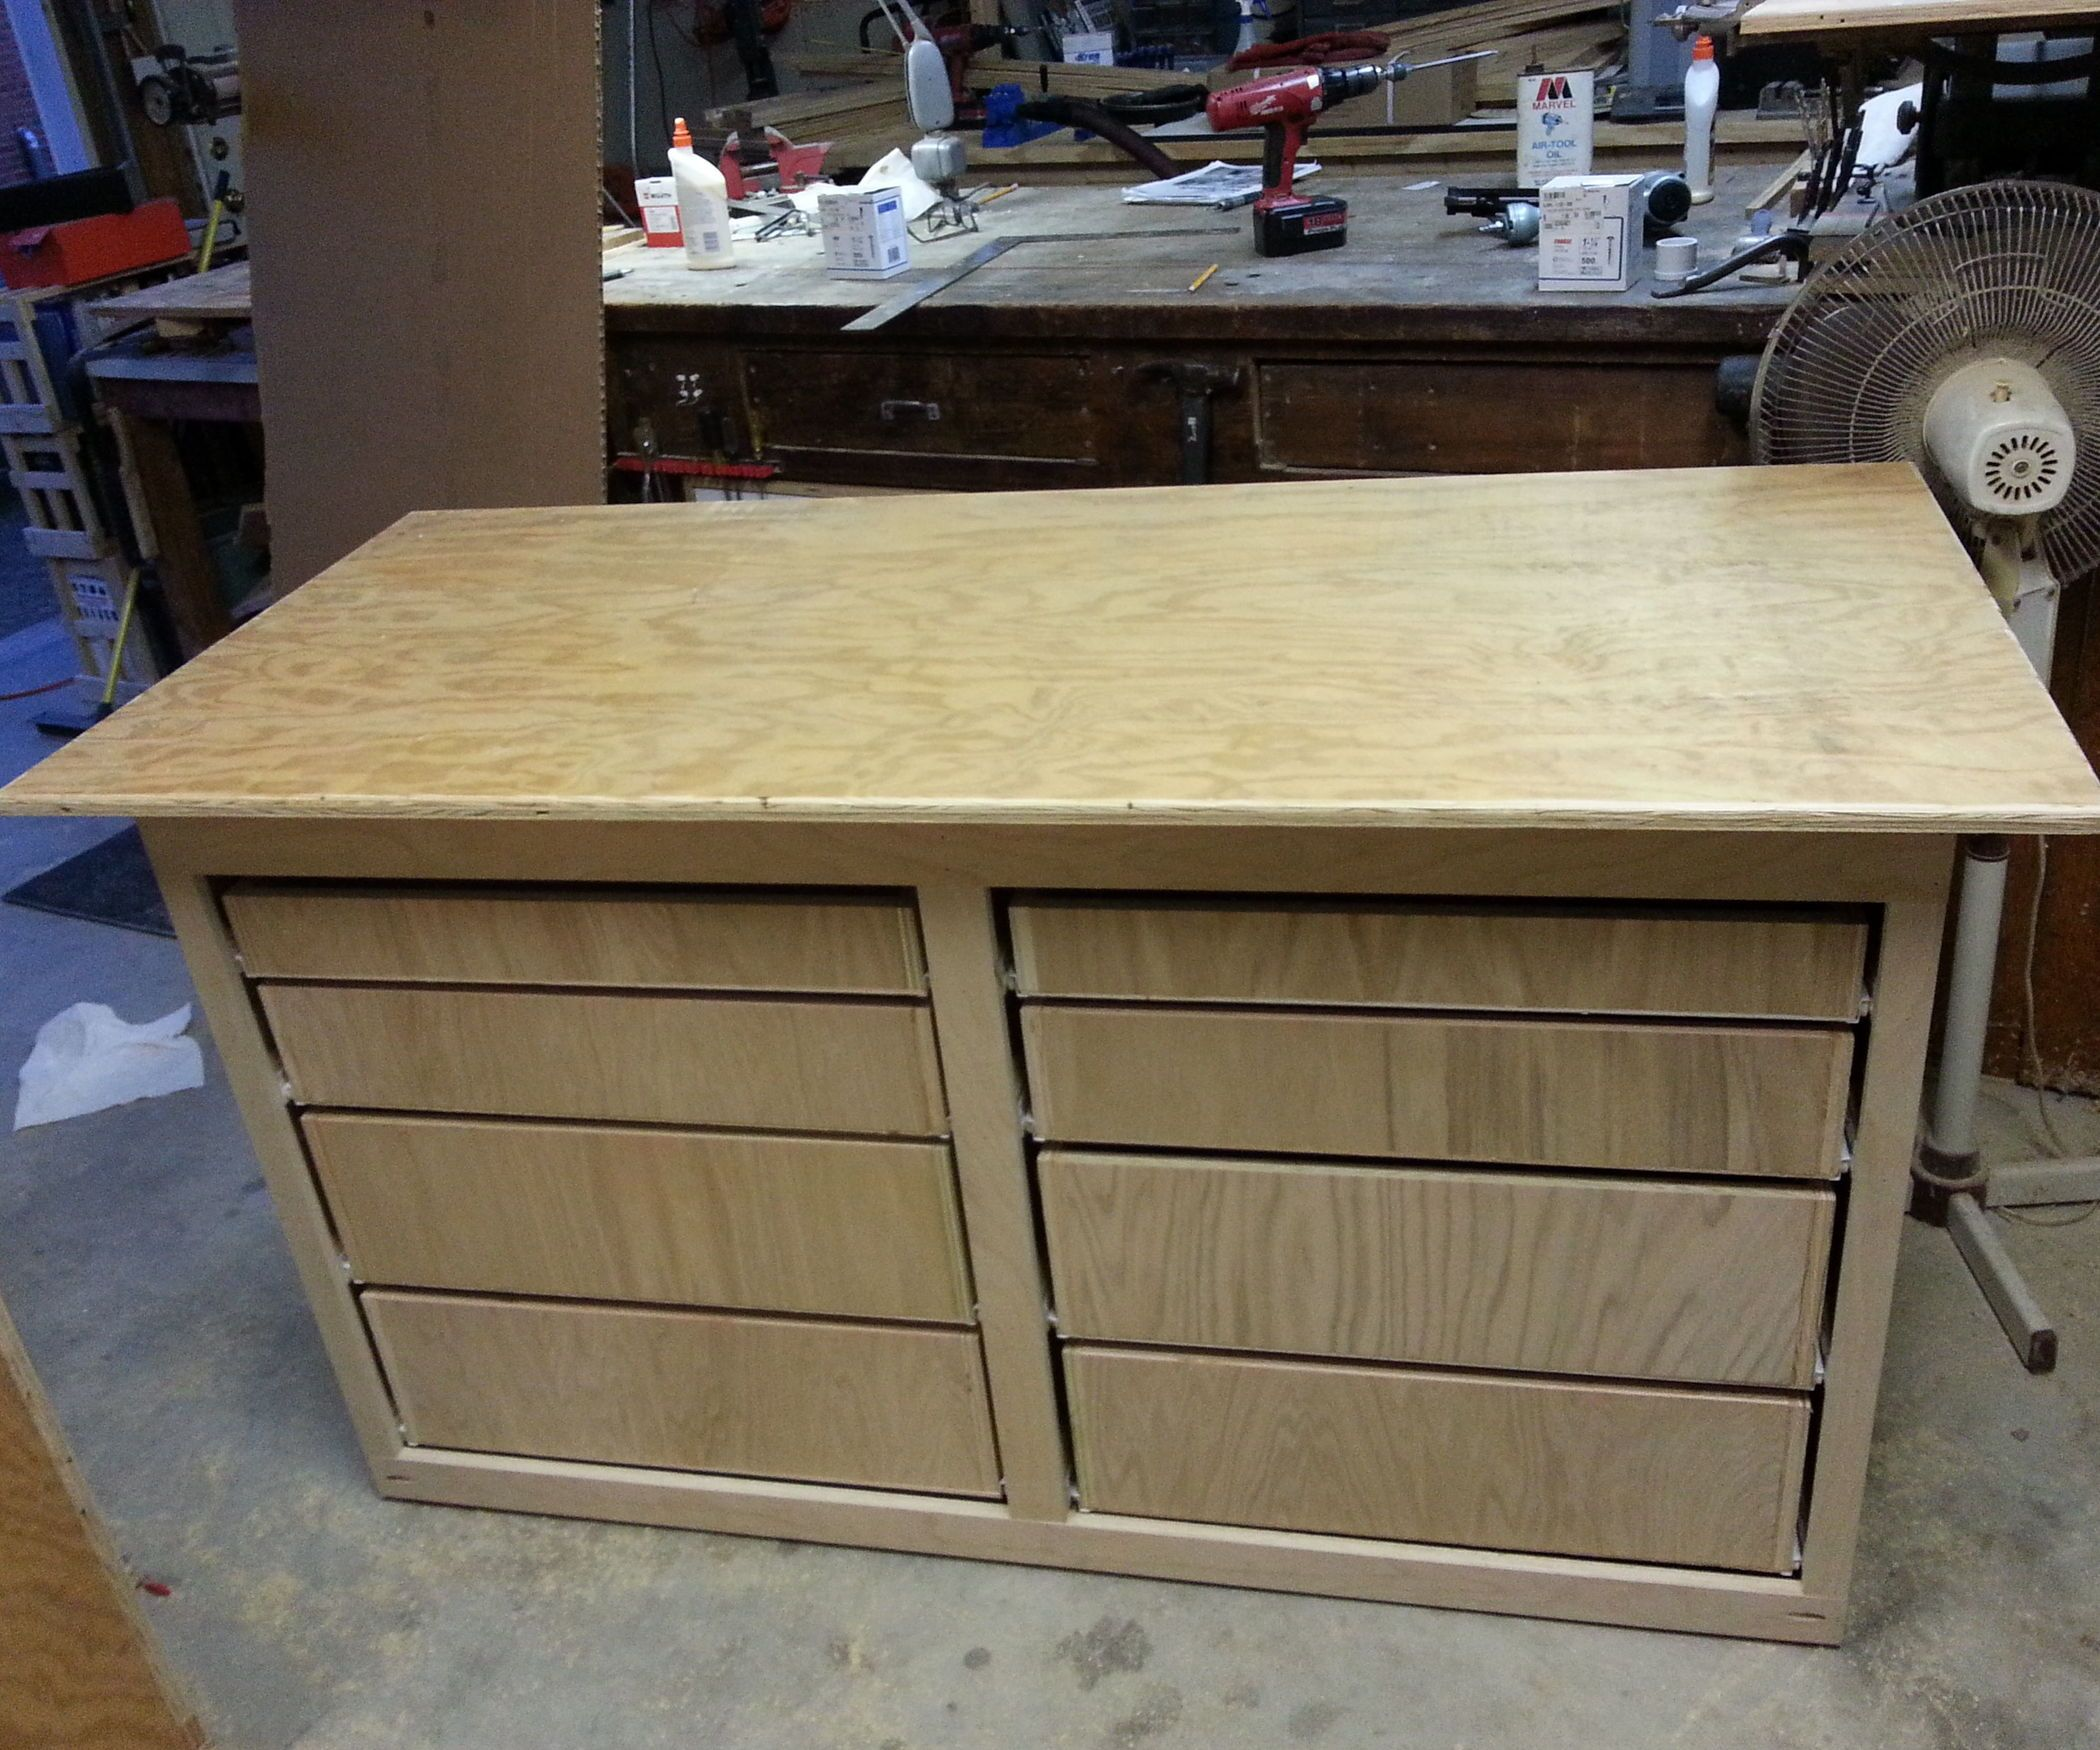 Workbench With Drawers in 5 Days | DIY | Workbench with ...